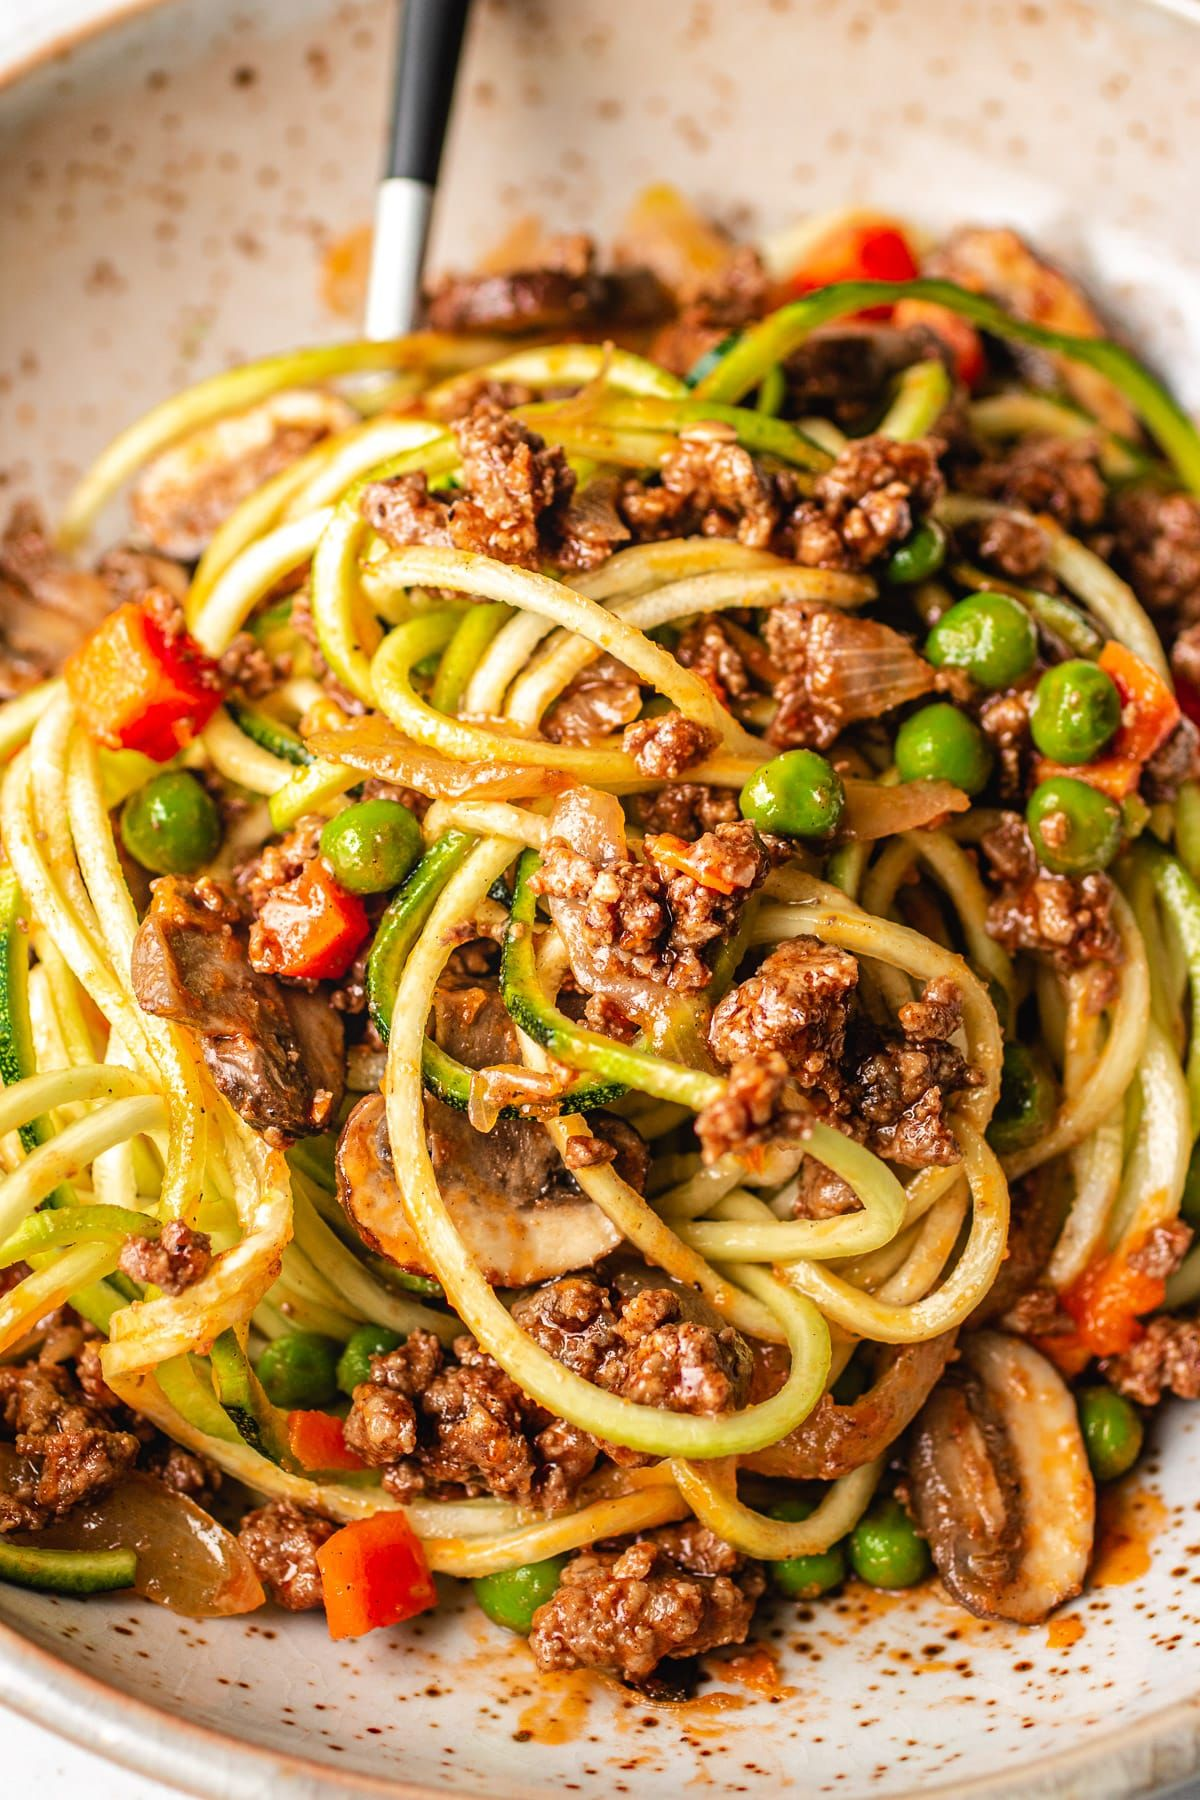 Easy Ground Beef Meal Prep Recipe Paleo Whole30 Recipe In 2020 Ground Beef Recipes Easy Ground Beef Paleo Recipes Beef Dishes